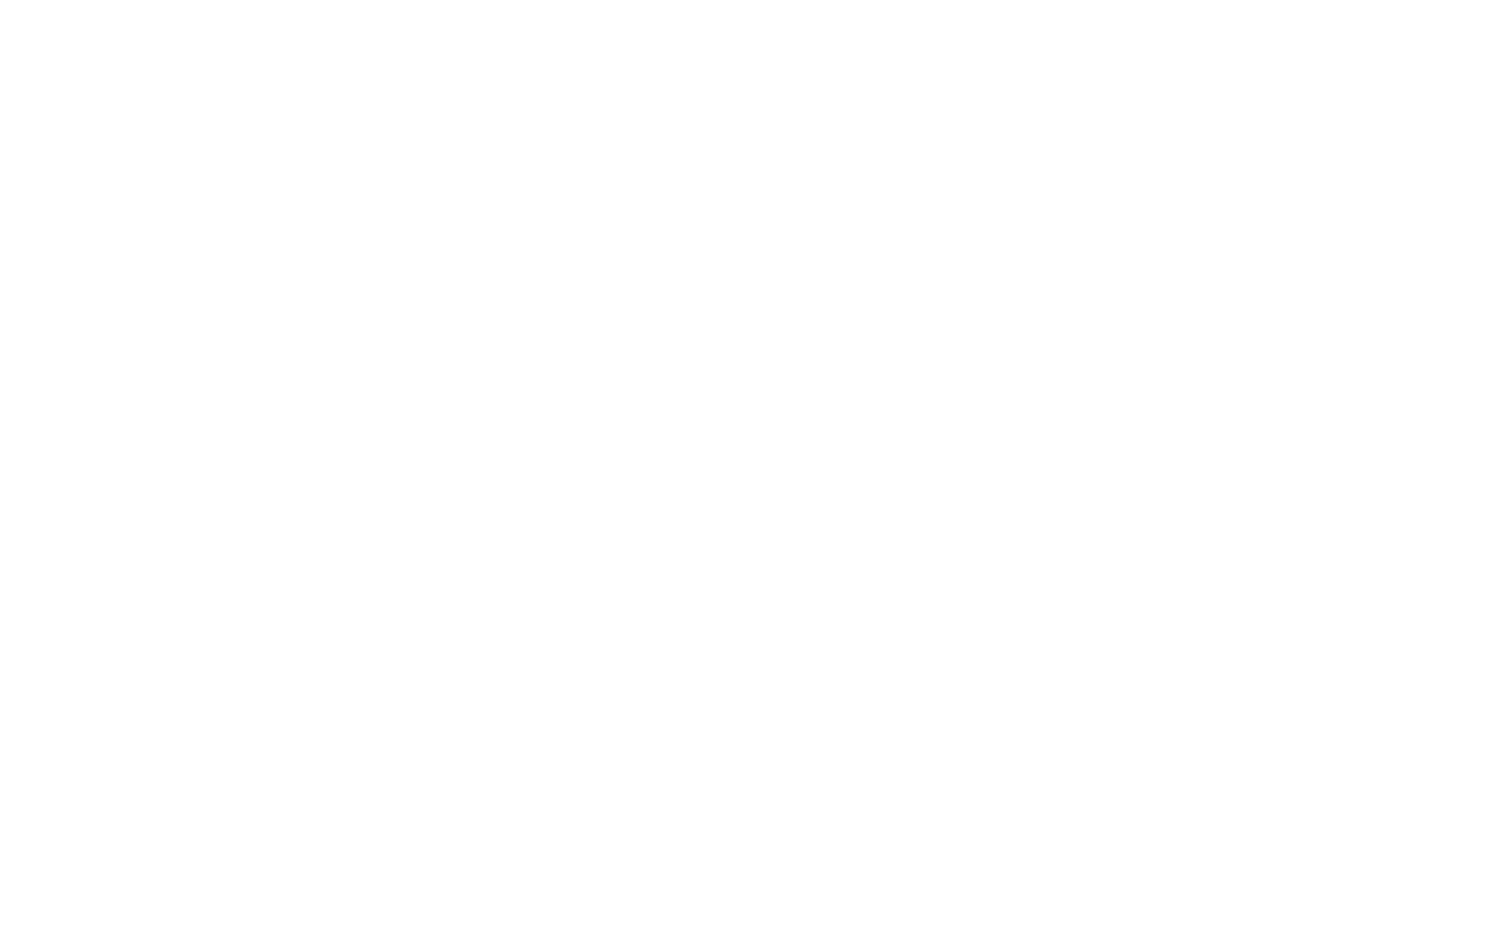 Eichar Photography | St. Louis Based Wedding Photography